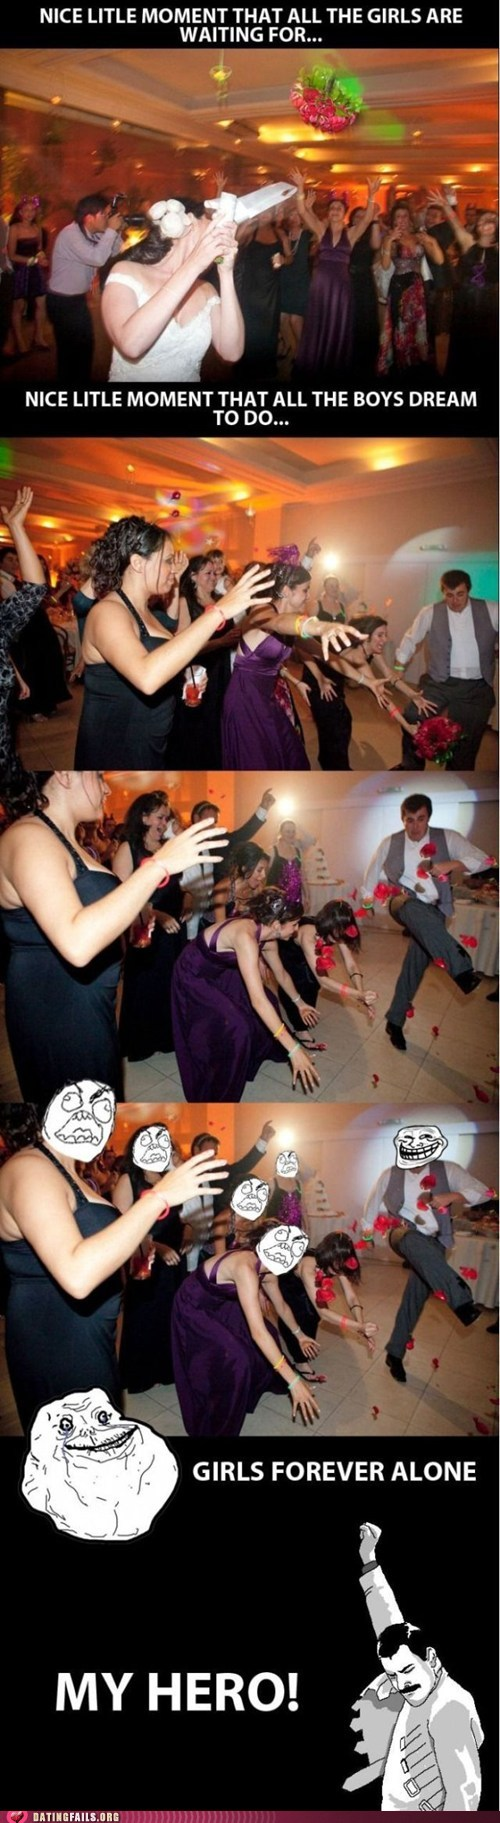 dating-fails-breaking-the-cycle-bouquet-kick